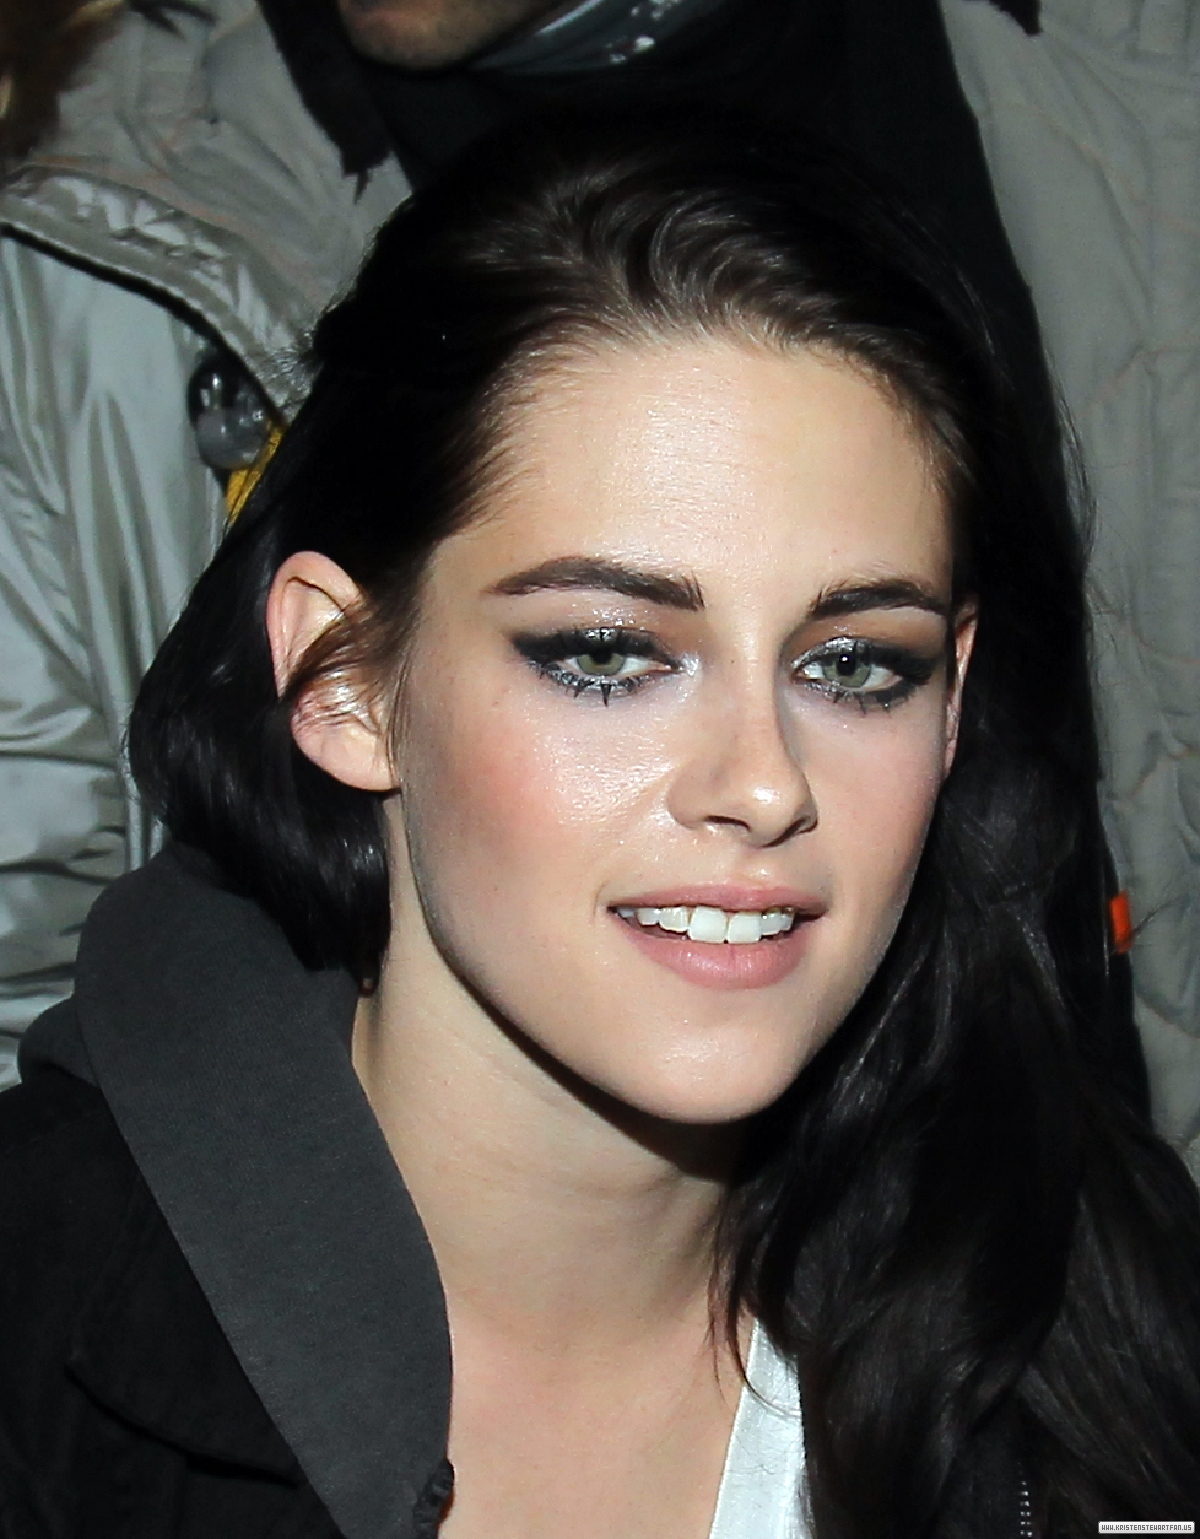 Kristen-Stewart-arriving-at-her-hotel-in-Paris-January-30-2012-kristen ...